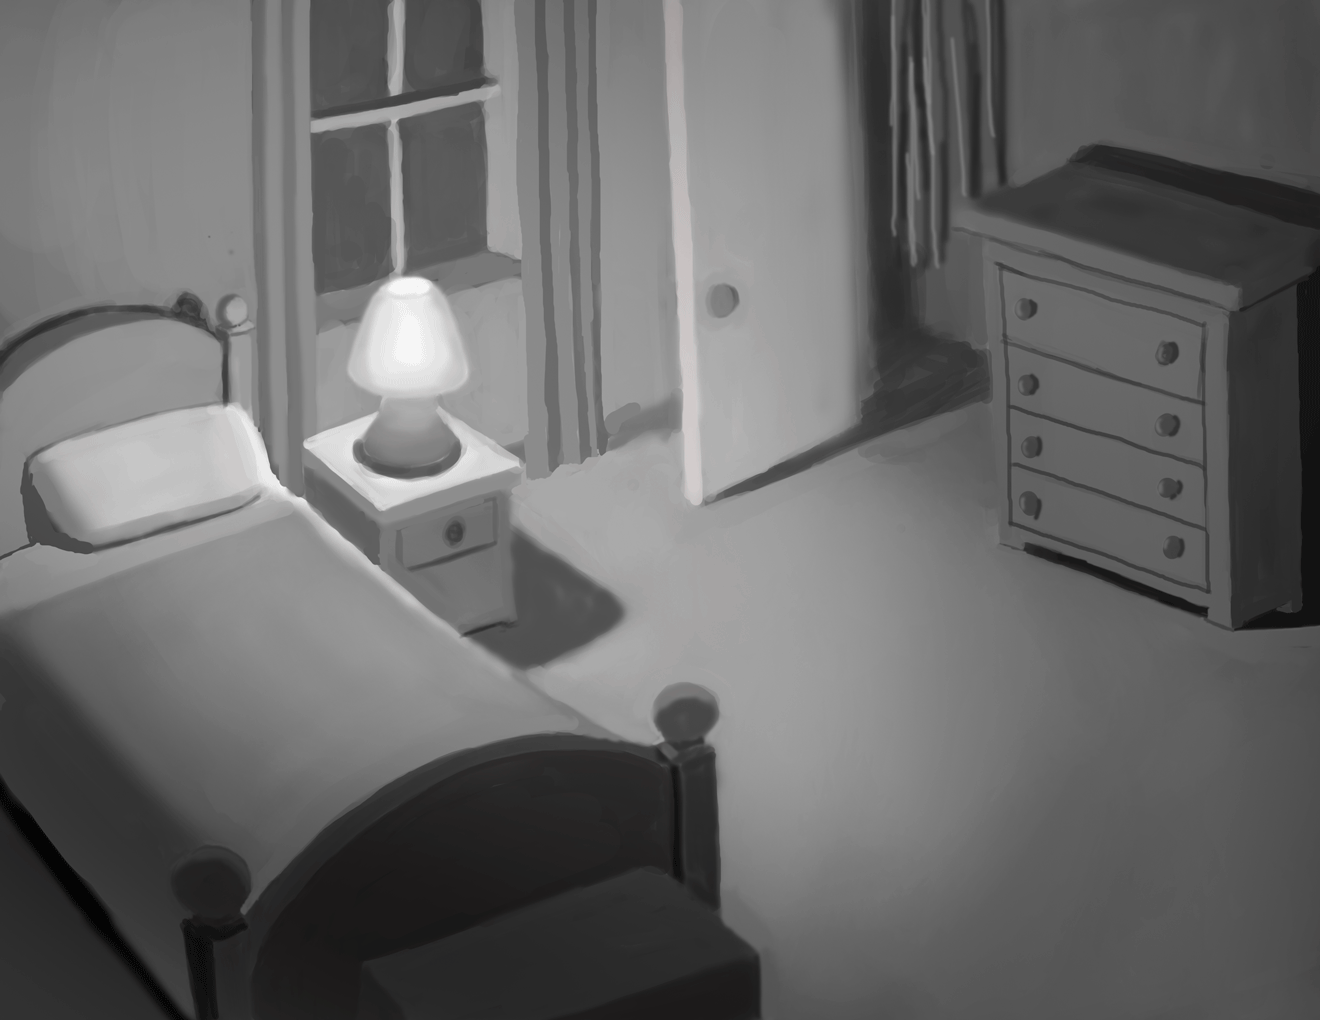 Practice_RoomLight-2pt2-lamp-nicka-sergio-suggestions-.png